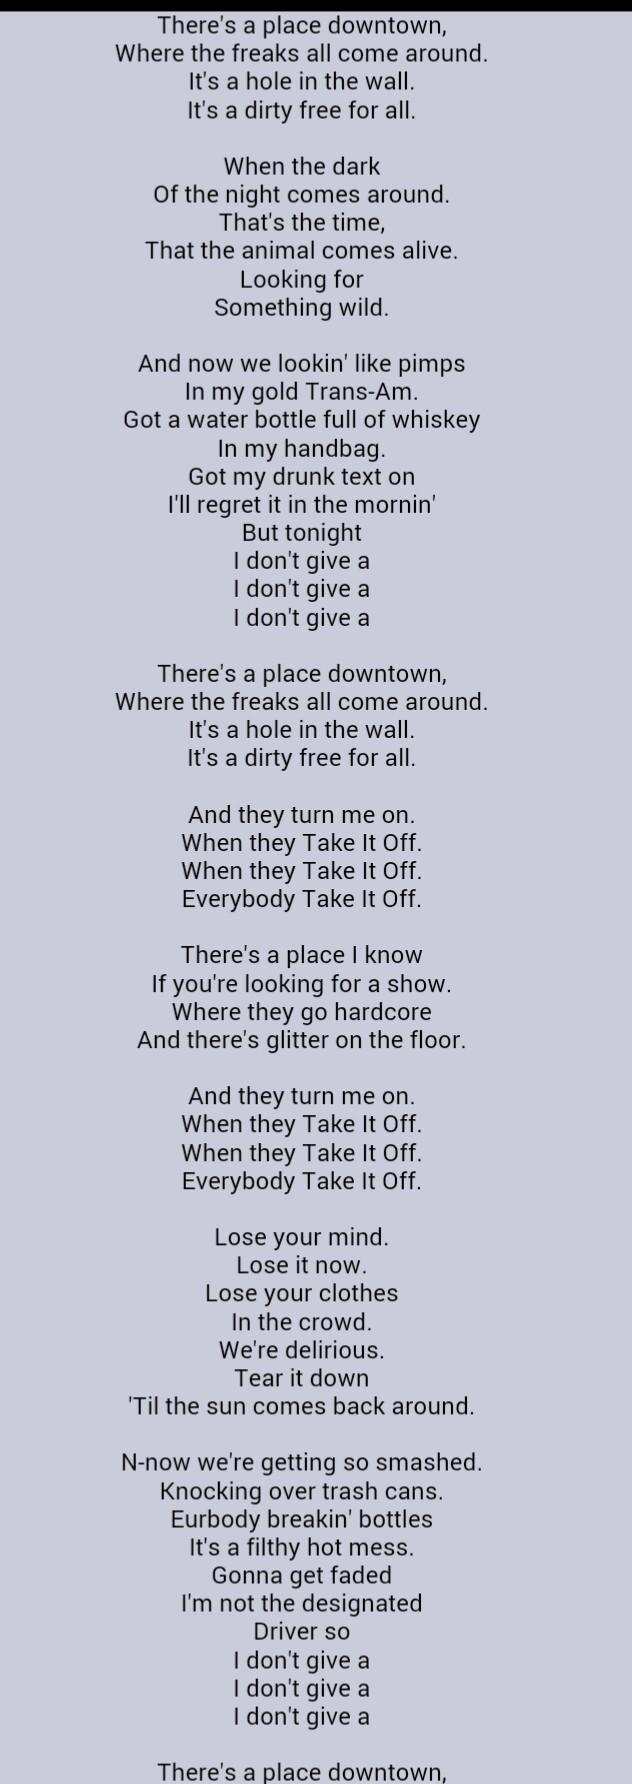 Take it off - Kesha